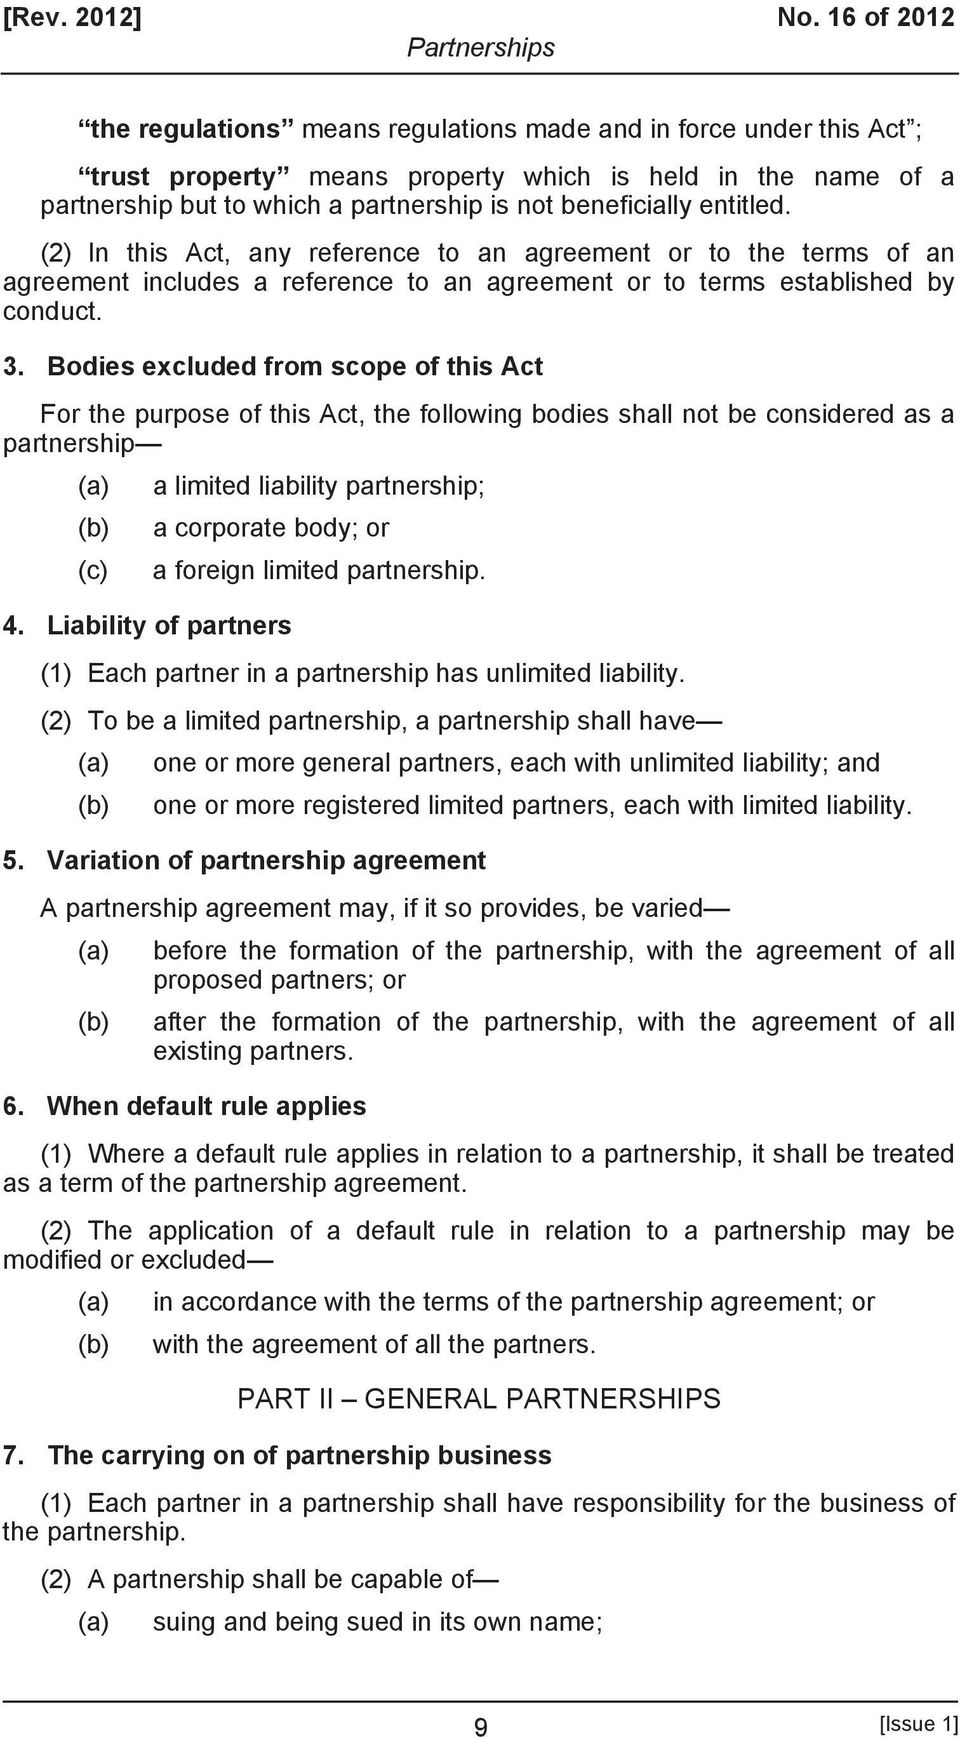 entitled. (2) In this Act, any reference to an agreement or to the terms of an agreement includes a reference to an agreement or to terms established by conduct. 3.